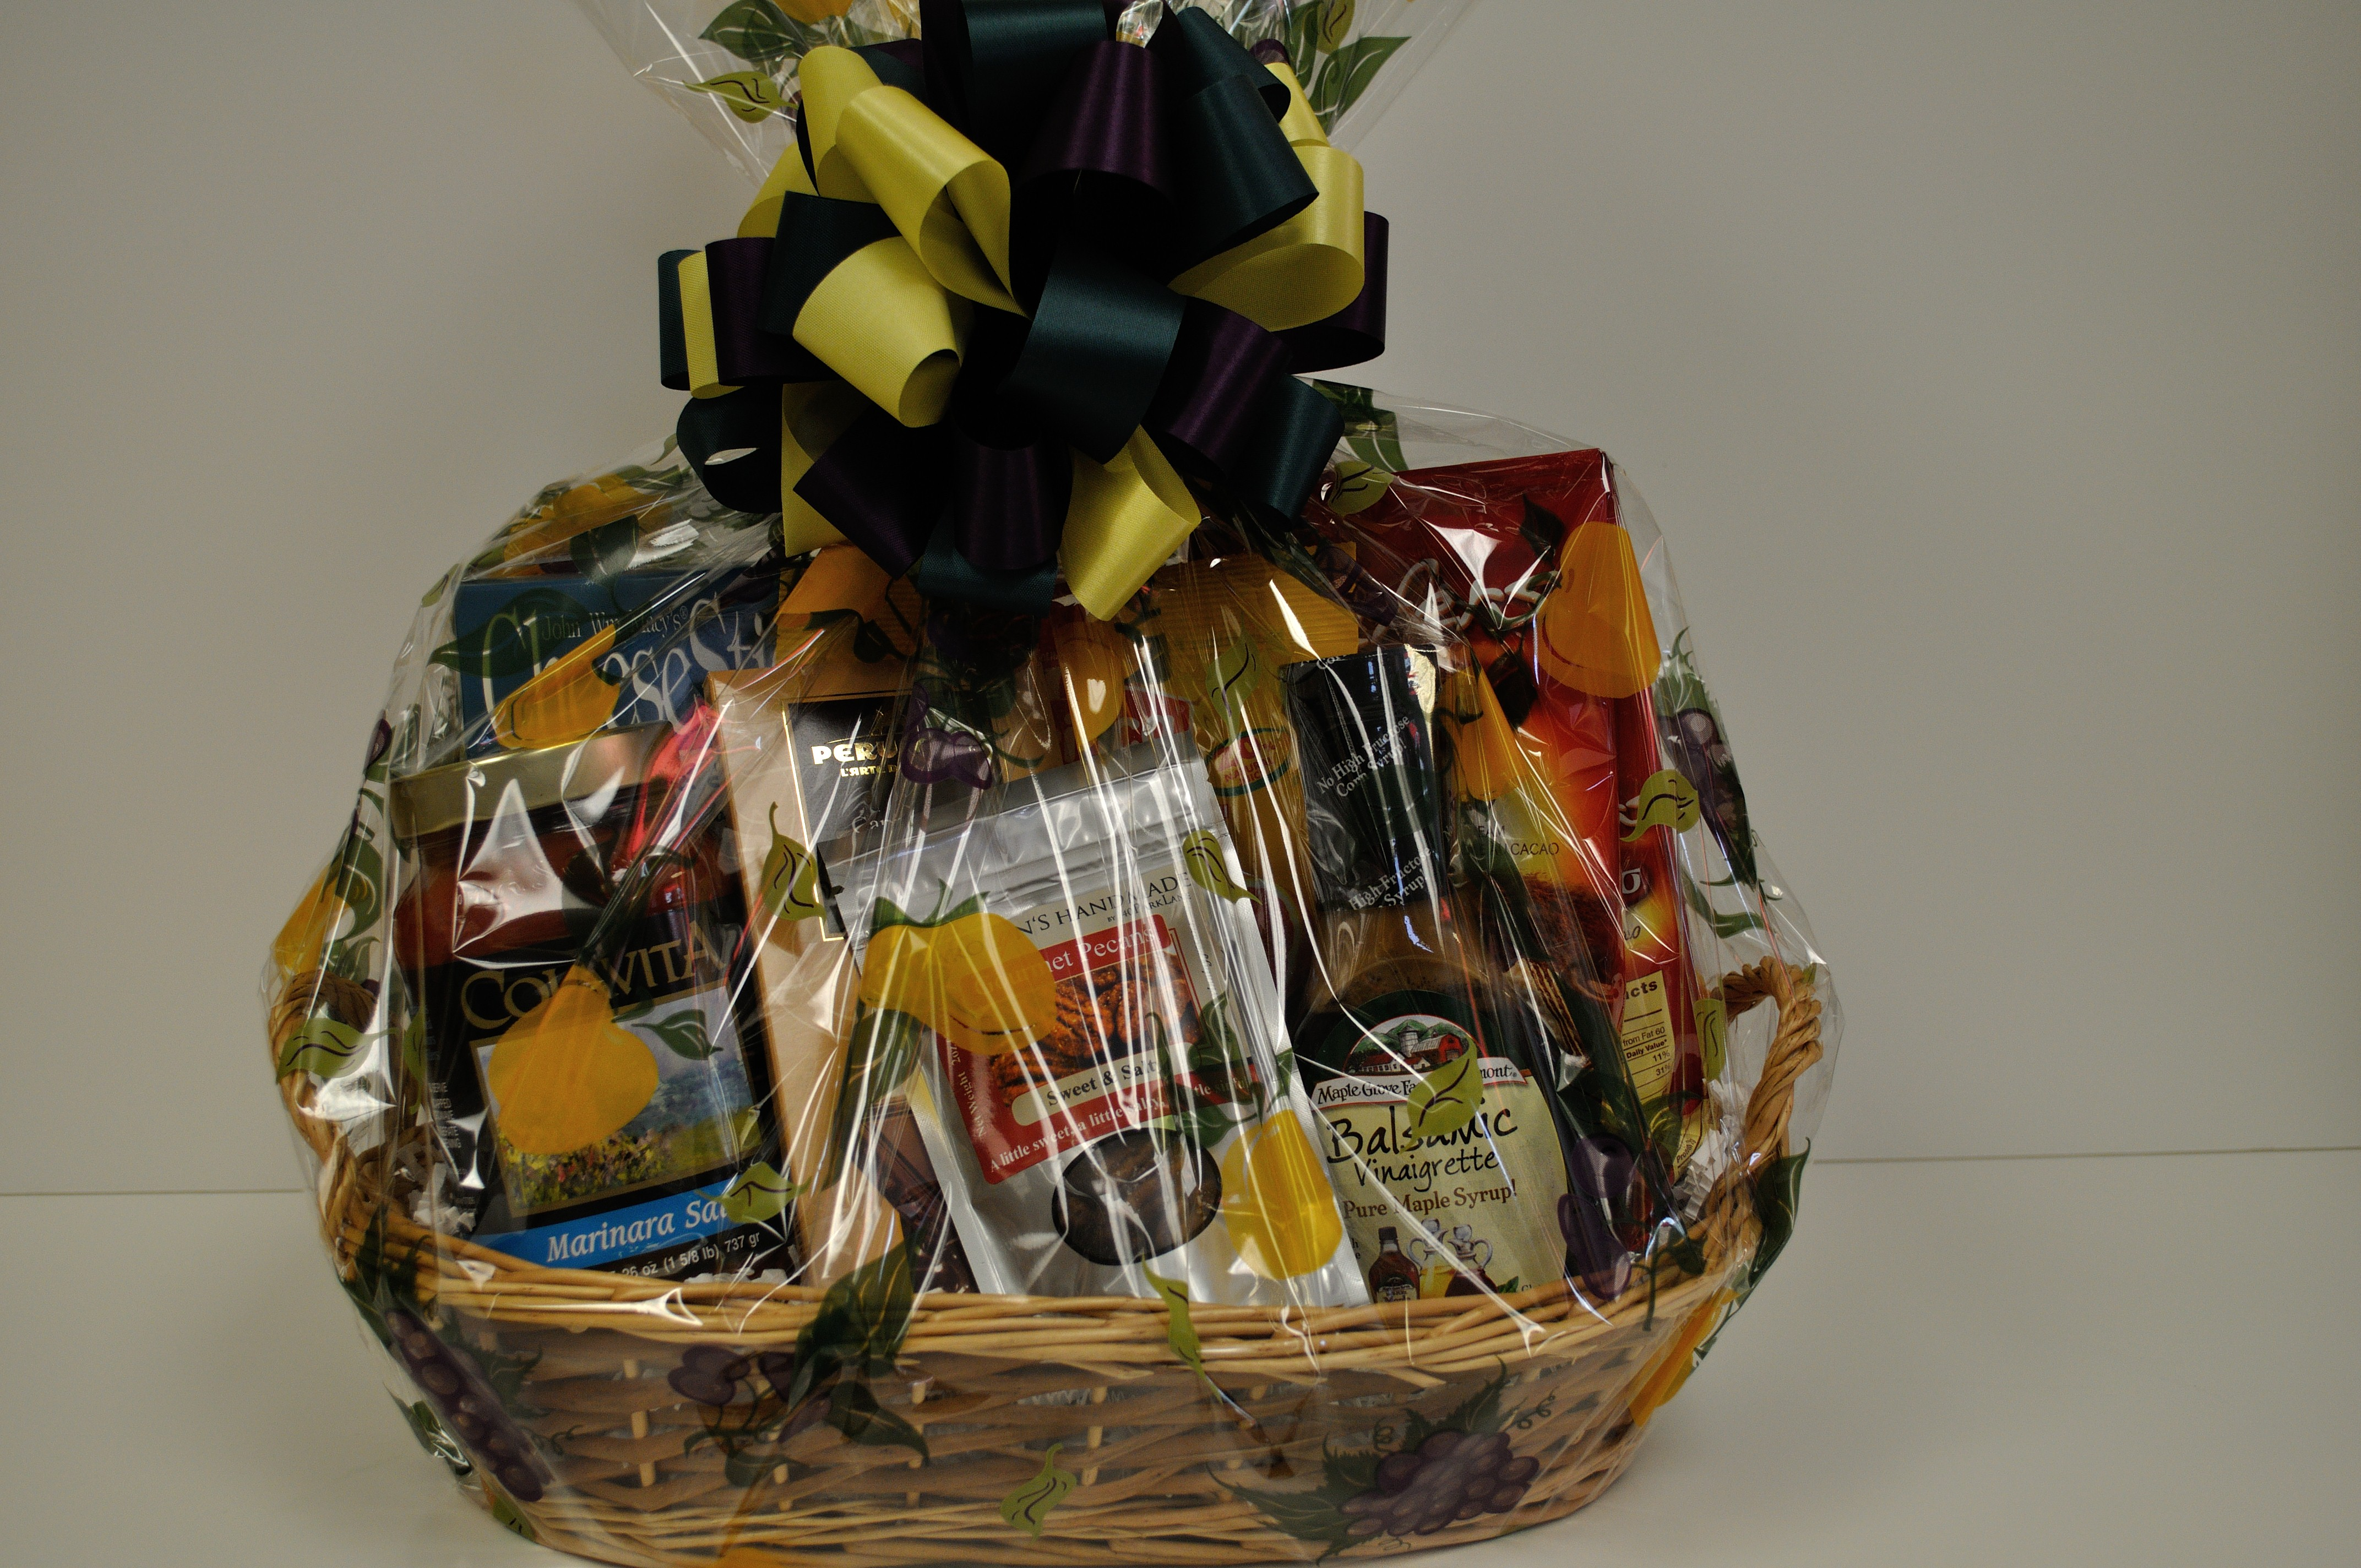 Themes For Gift Baskets: Angela's Pasta And Cheese Shop